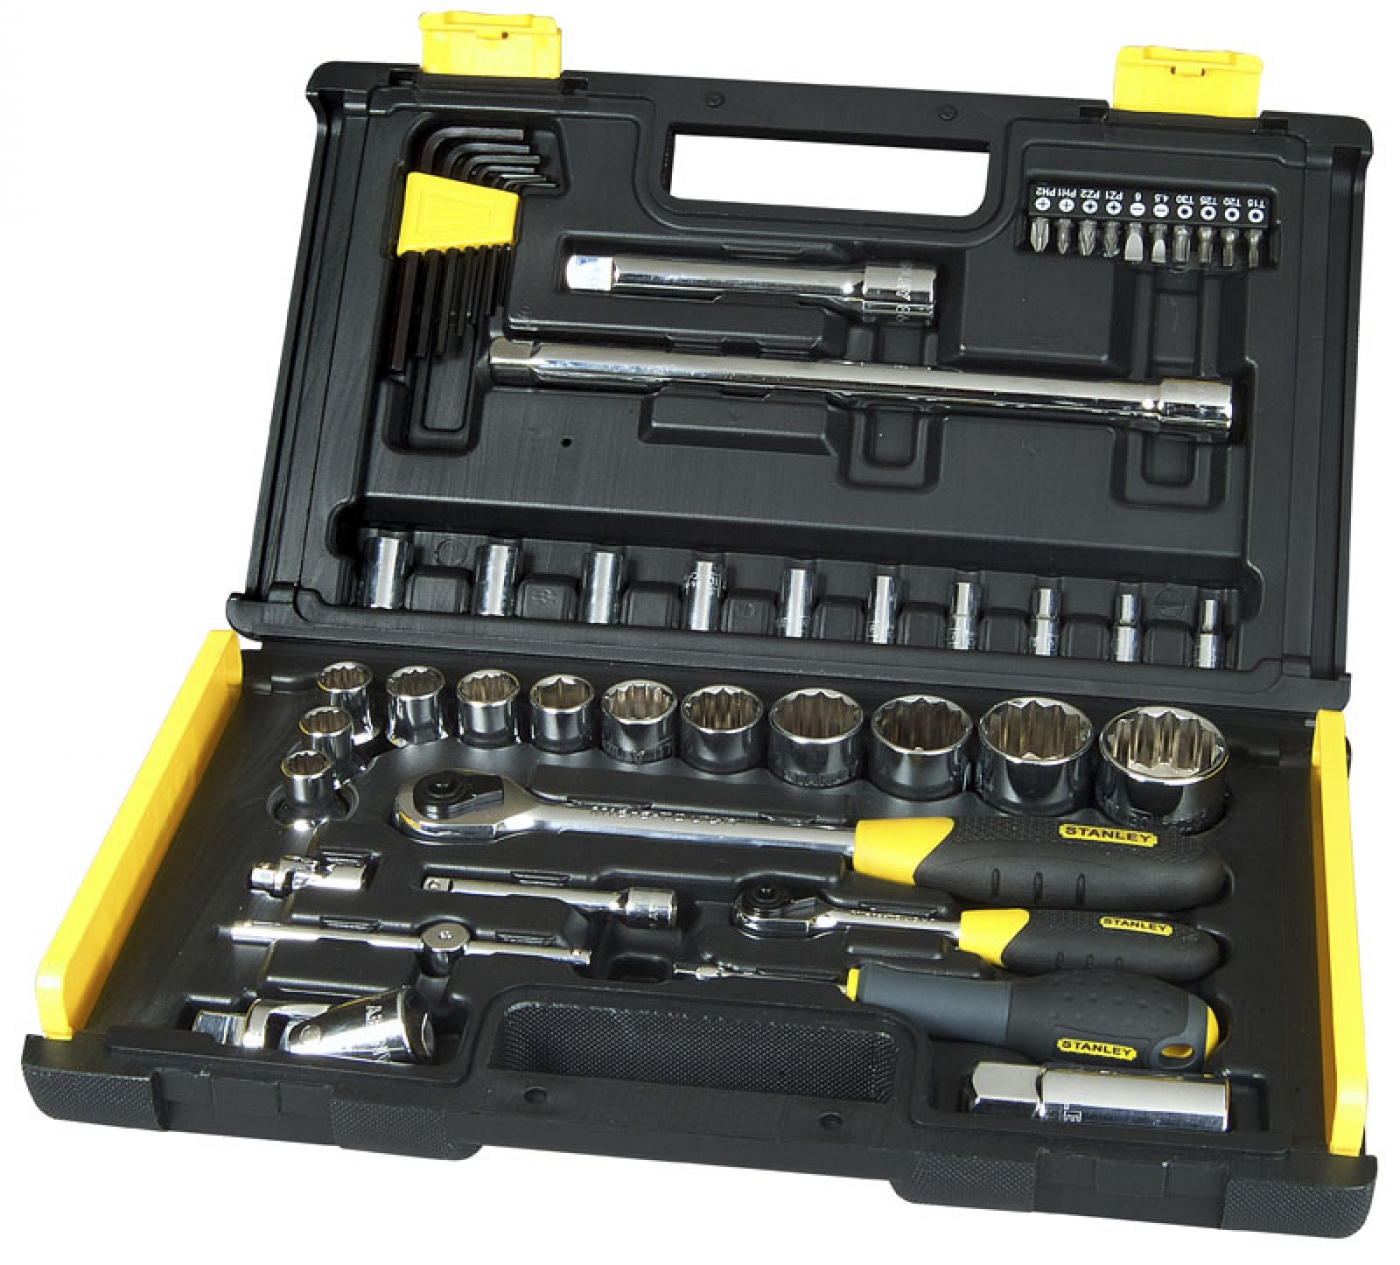 50-PIECE 1/4 & 1/2 UPTIER SOCKET SET